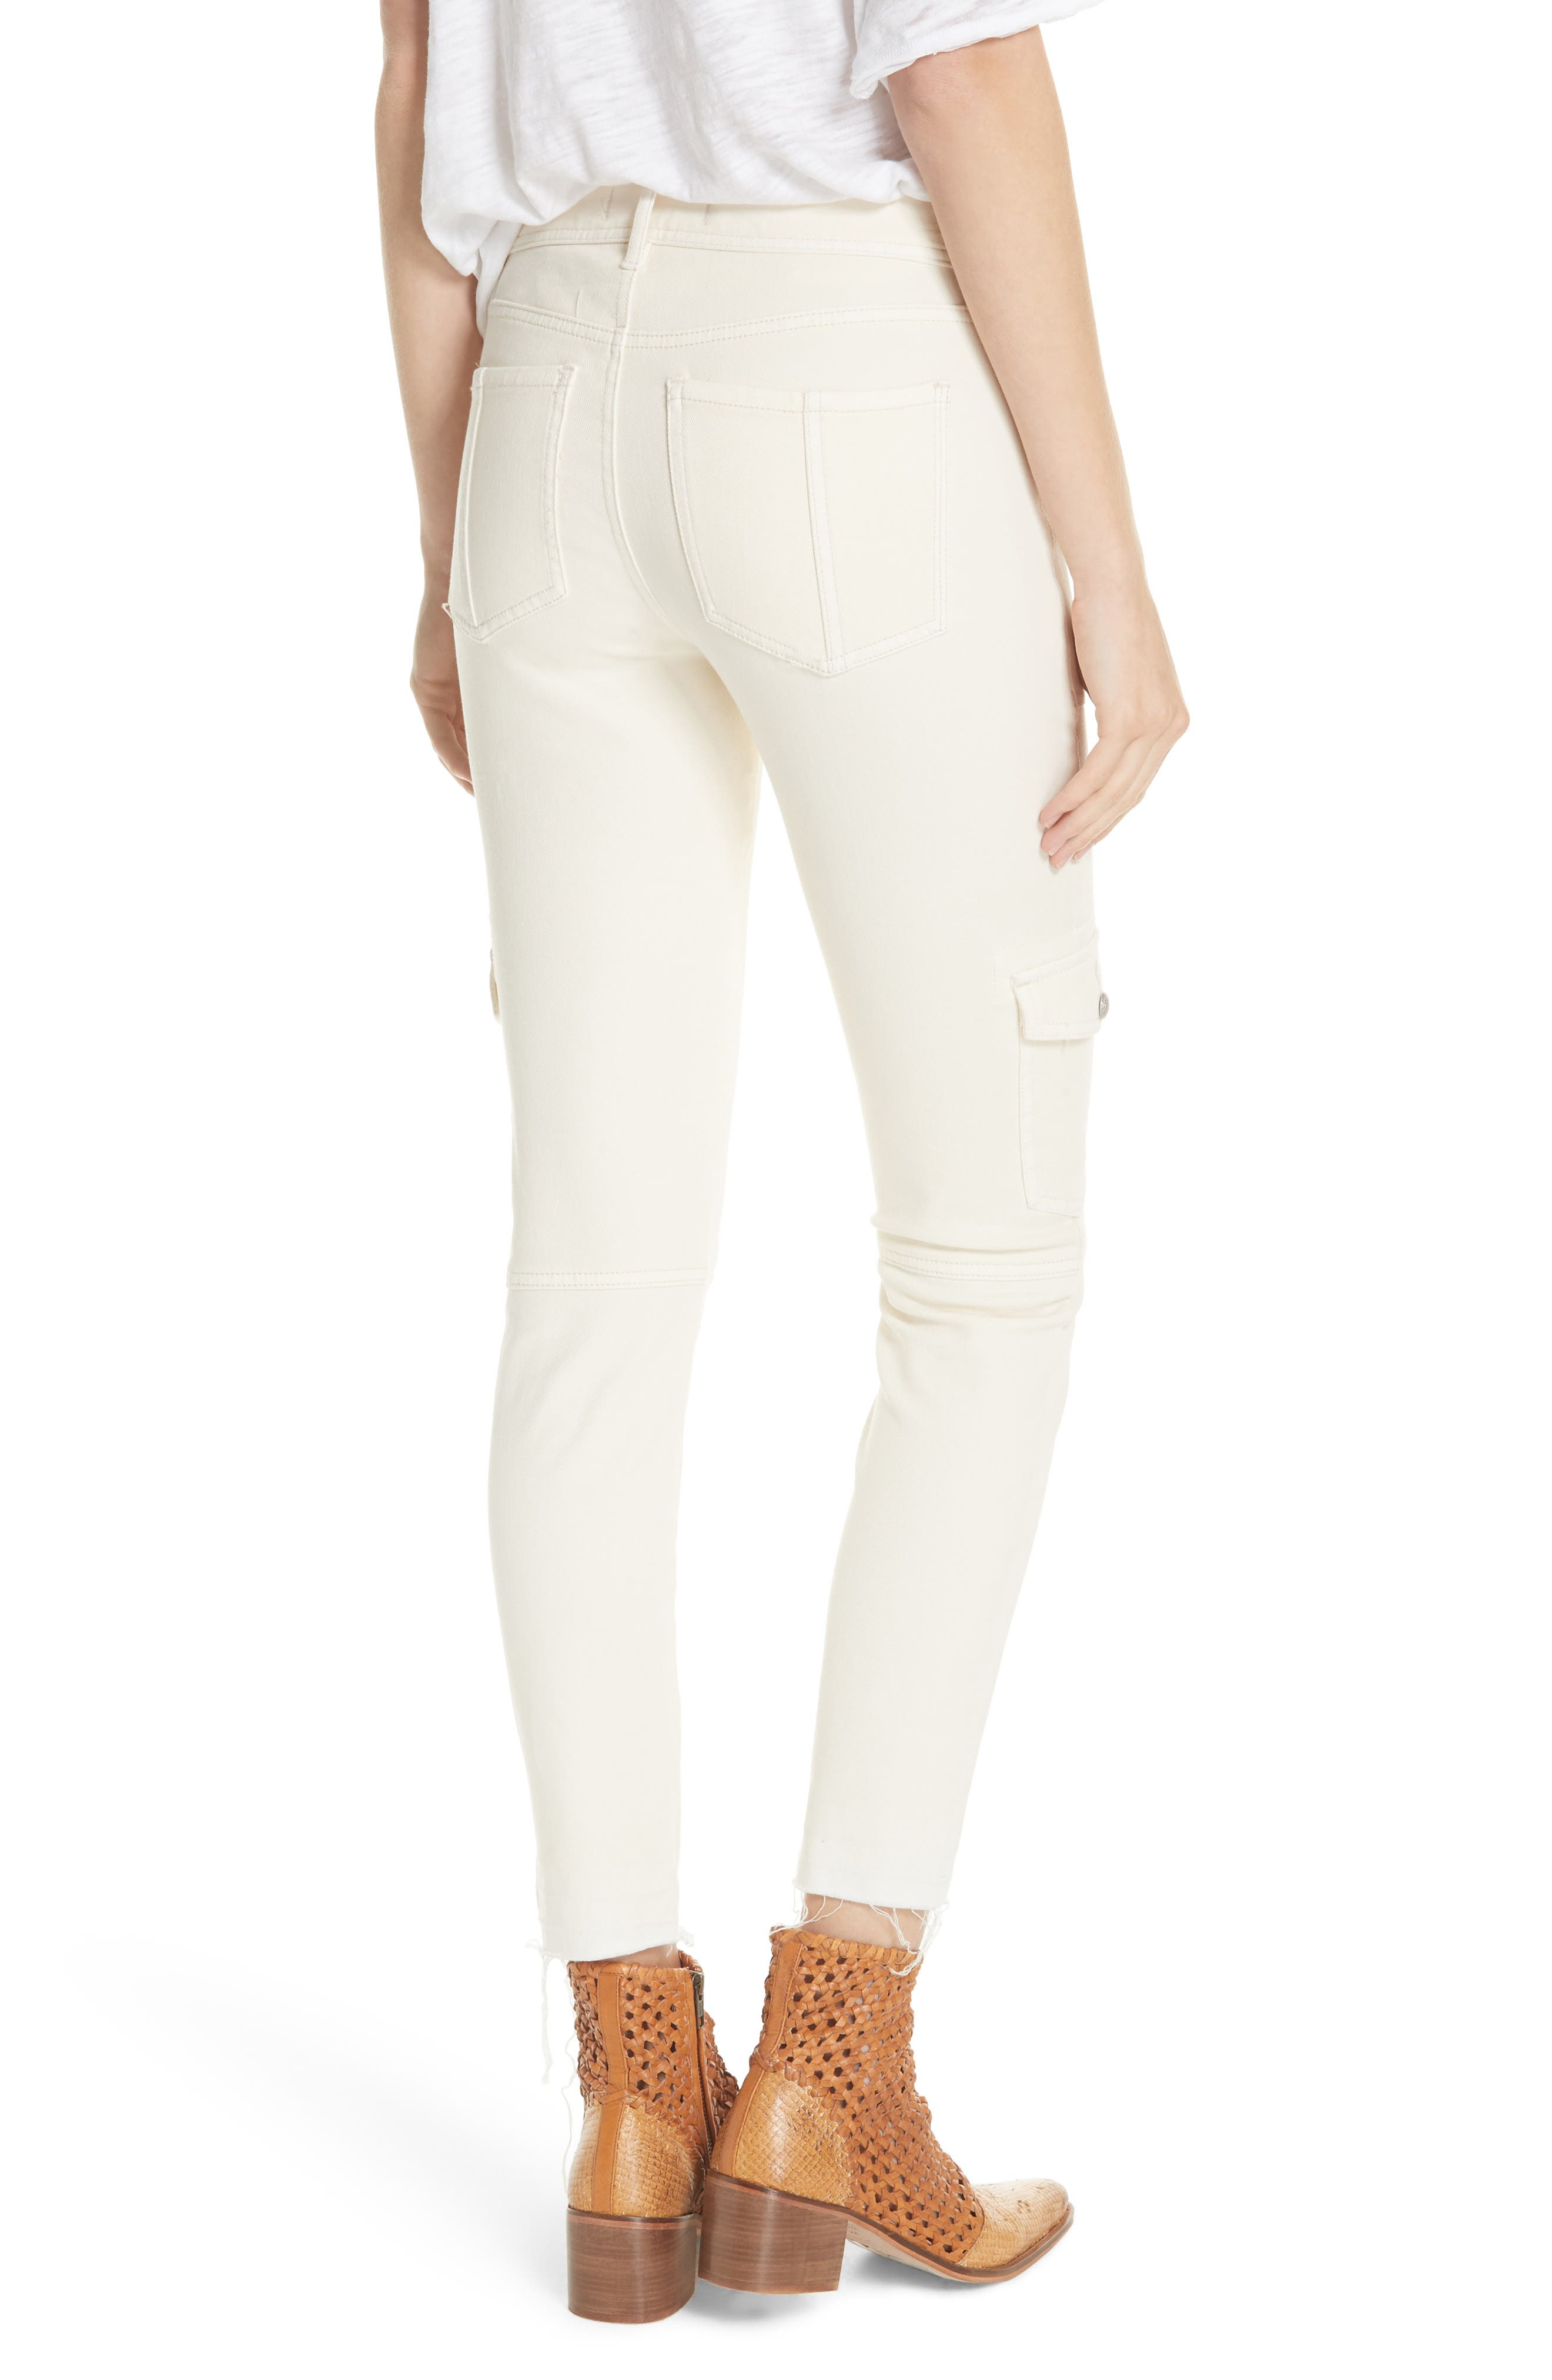 FREE PEOPLE,                             Utility Skinny Jeans,                             Alternate thumbnail 2, color,                             252